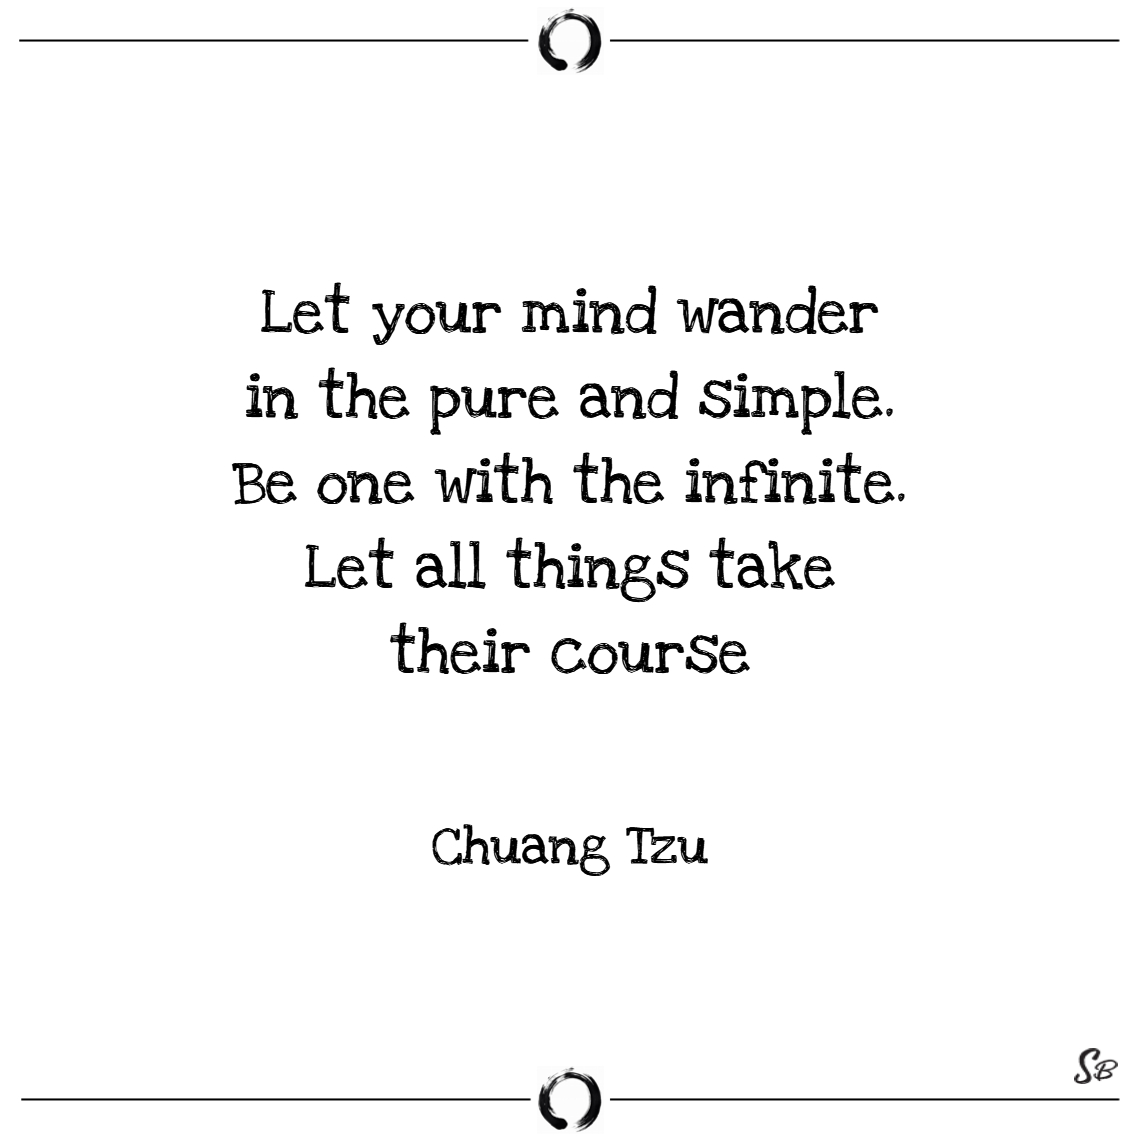 Let your mind wander in the pure and simple. be on